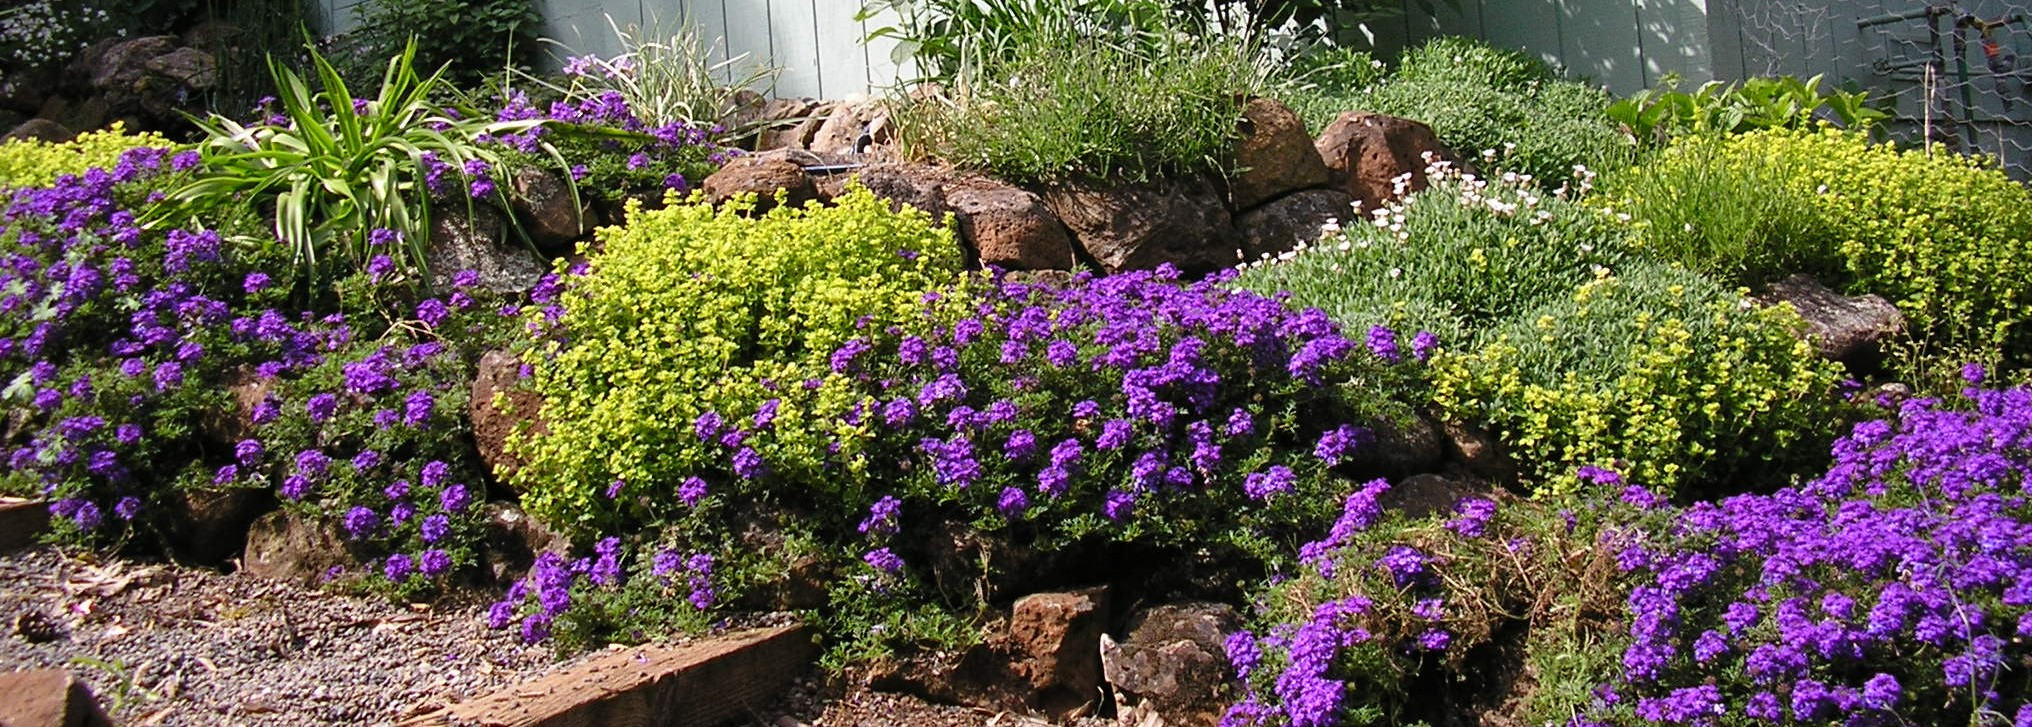 Here is some verbena and oregano in a garden installed by MML in 2004, which it continues to maintain.